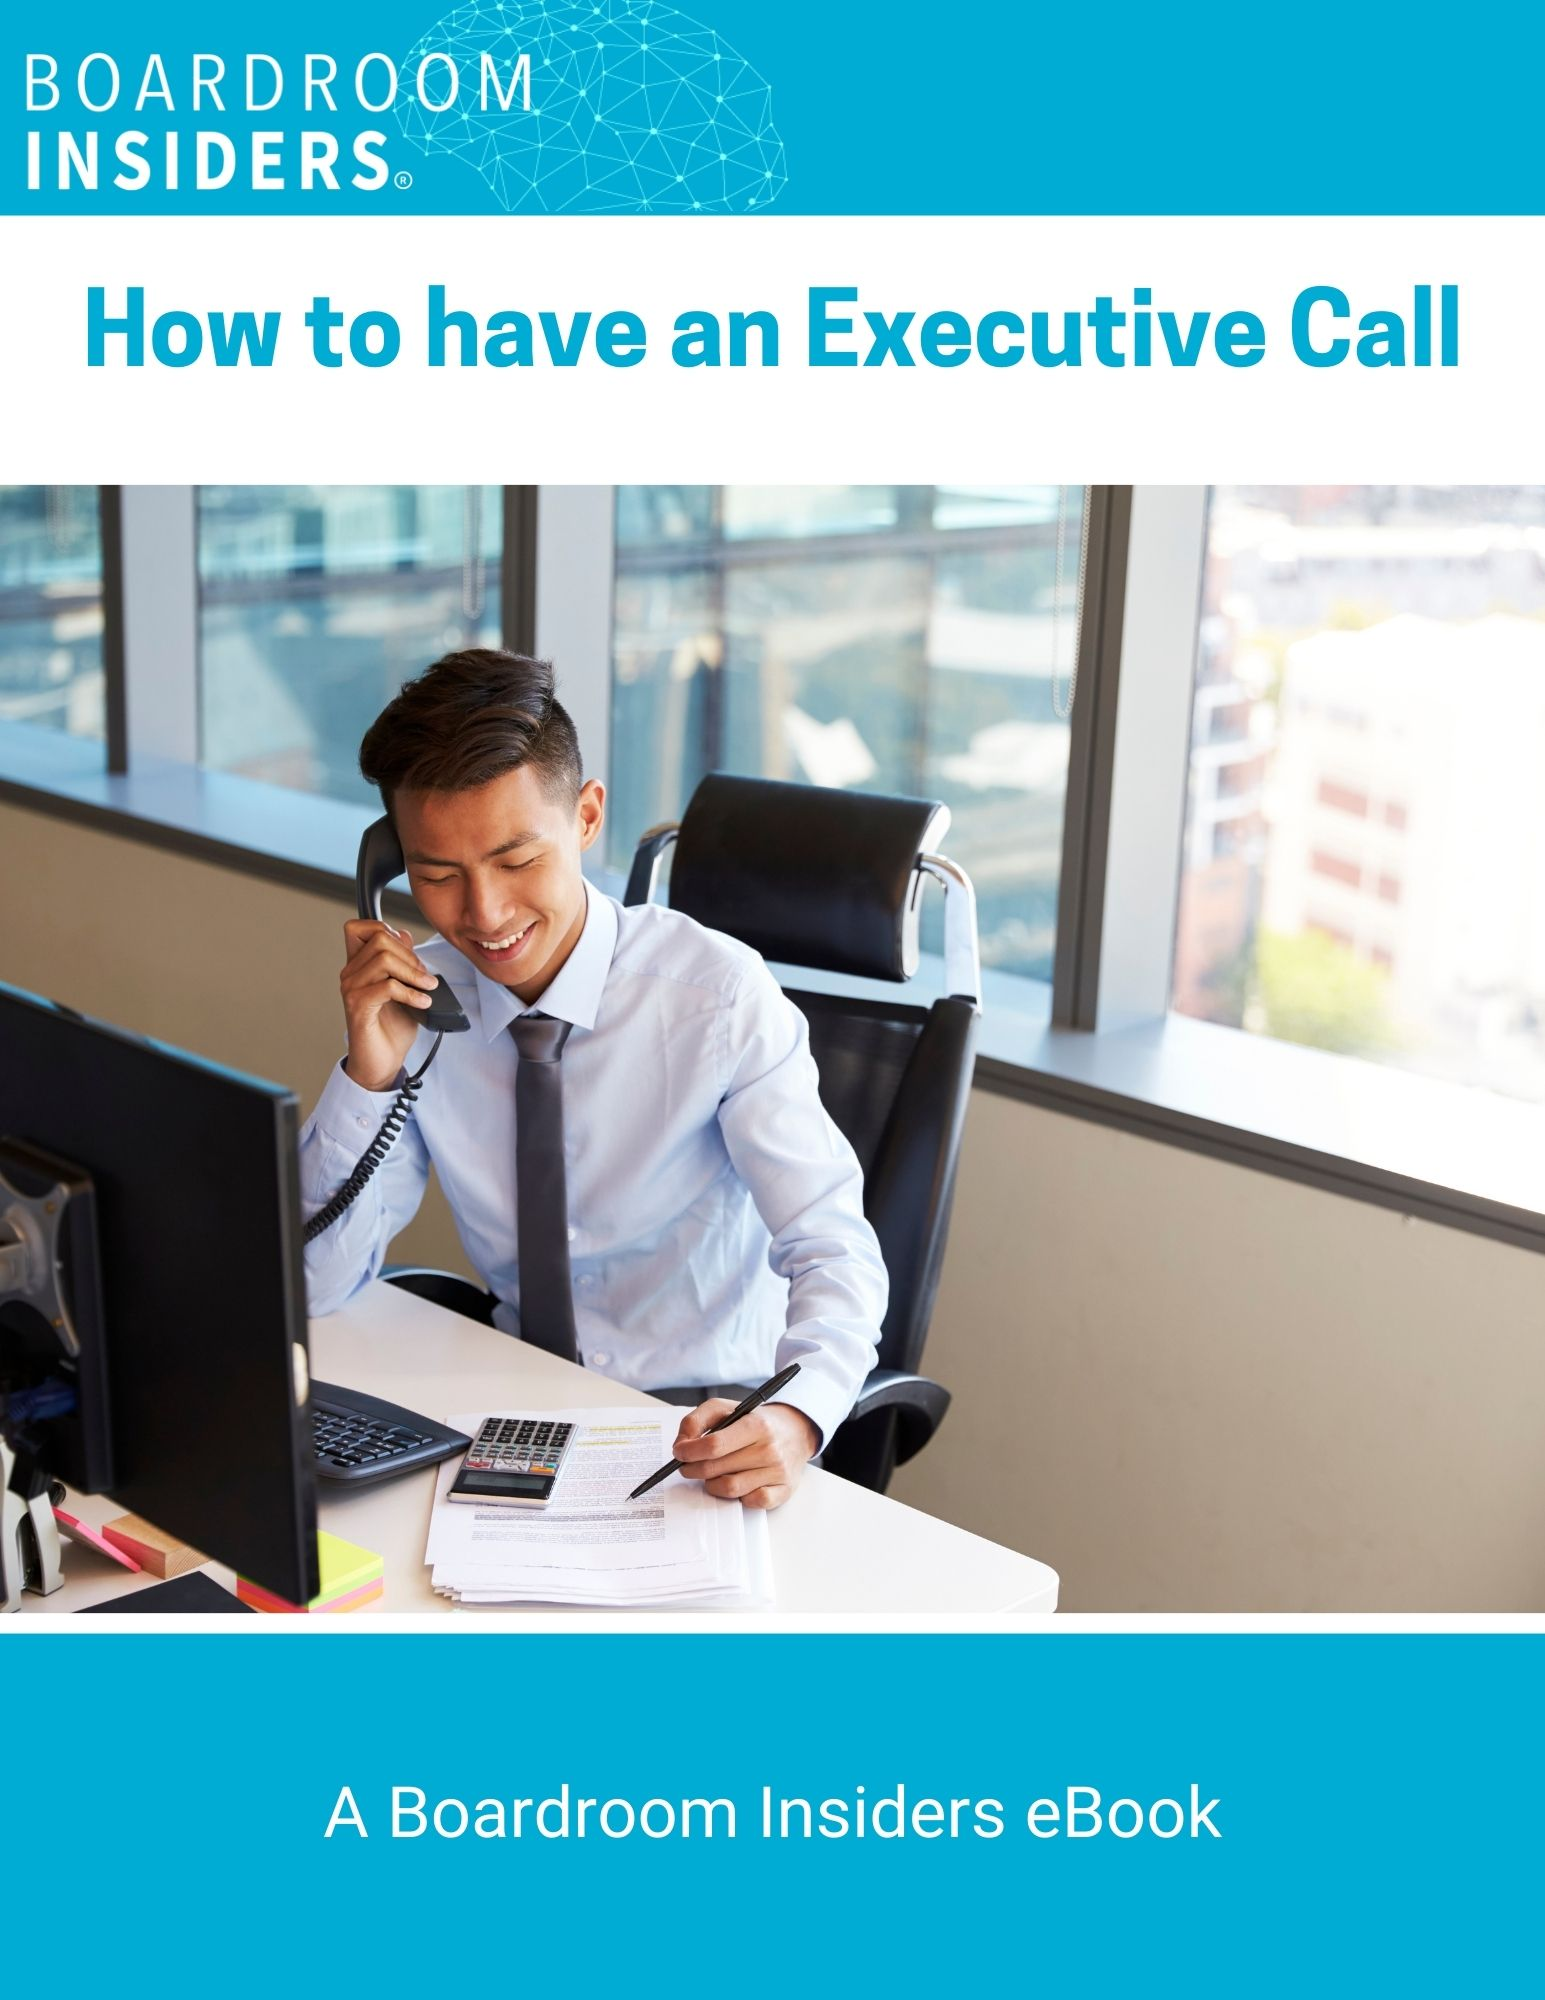 How to have an Executive Call